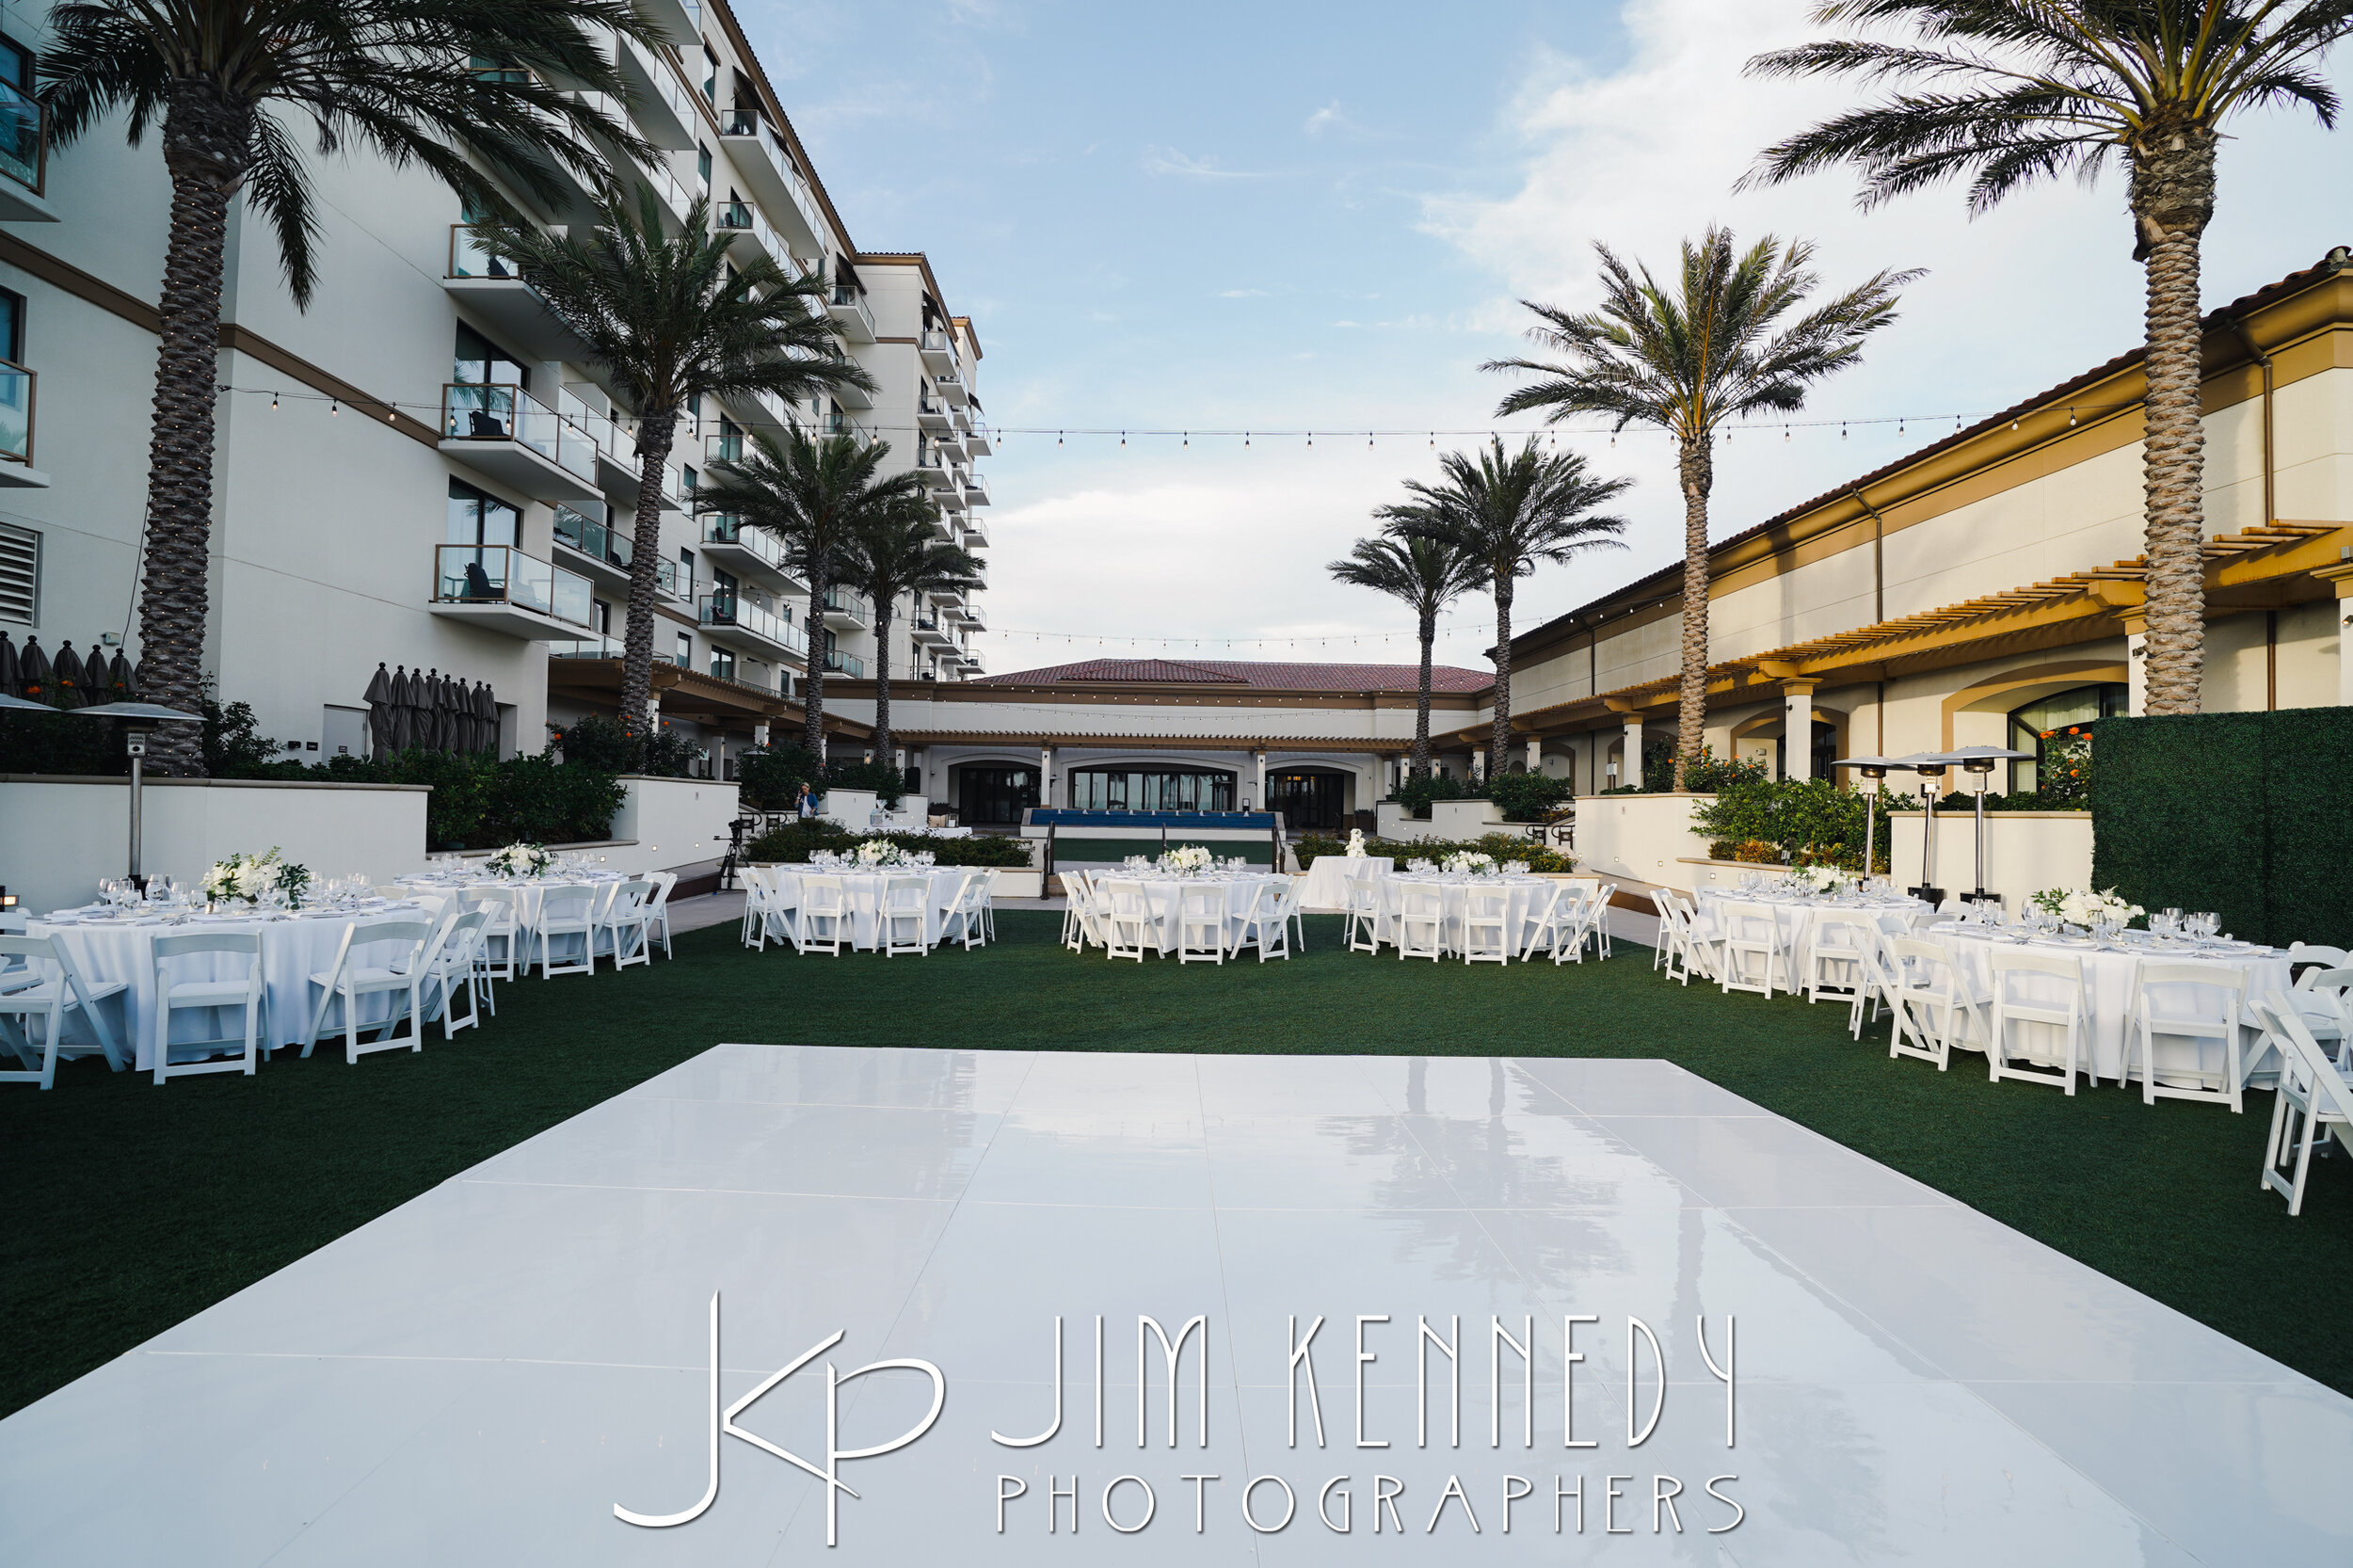 waterfront-hilton-wedding-jim-kennedy-photographers_0167.JPG